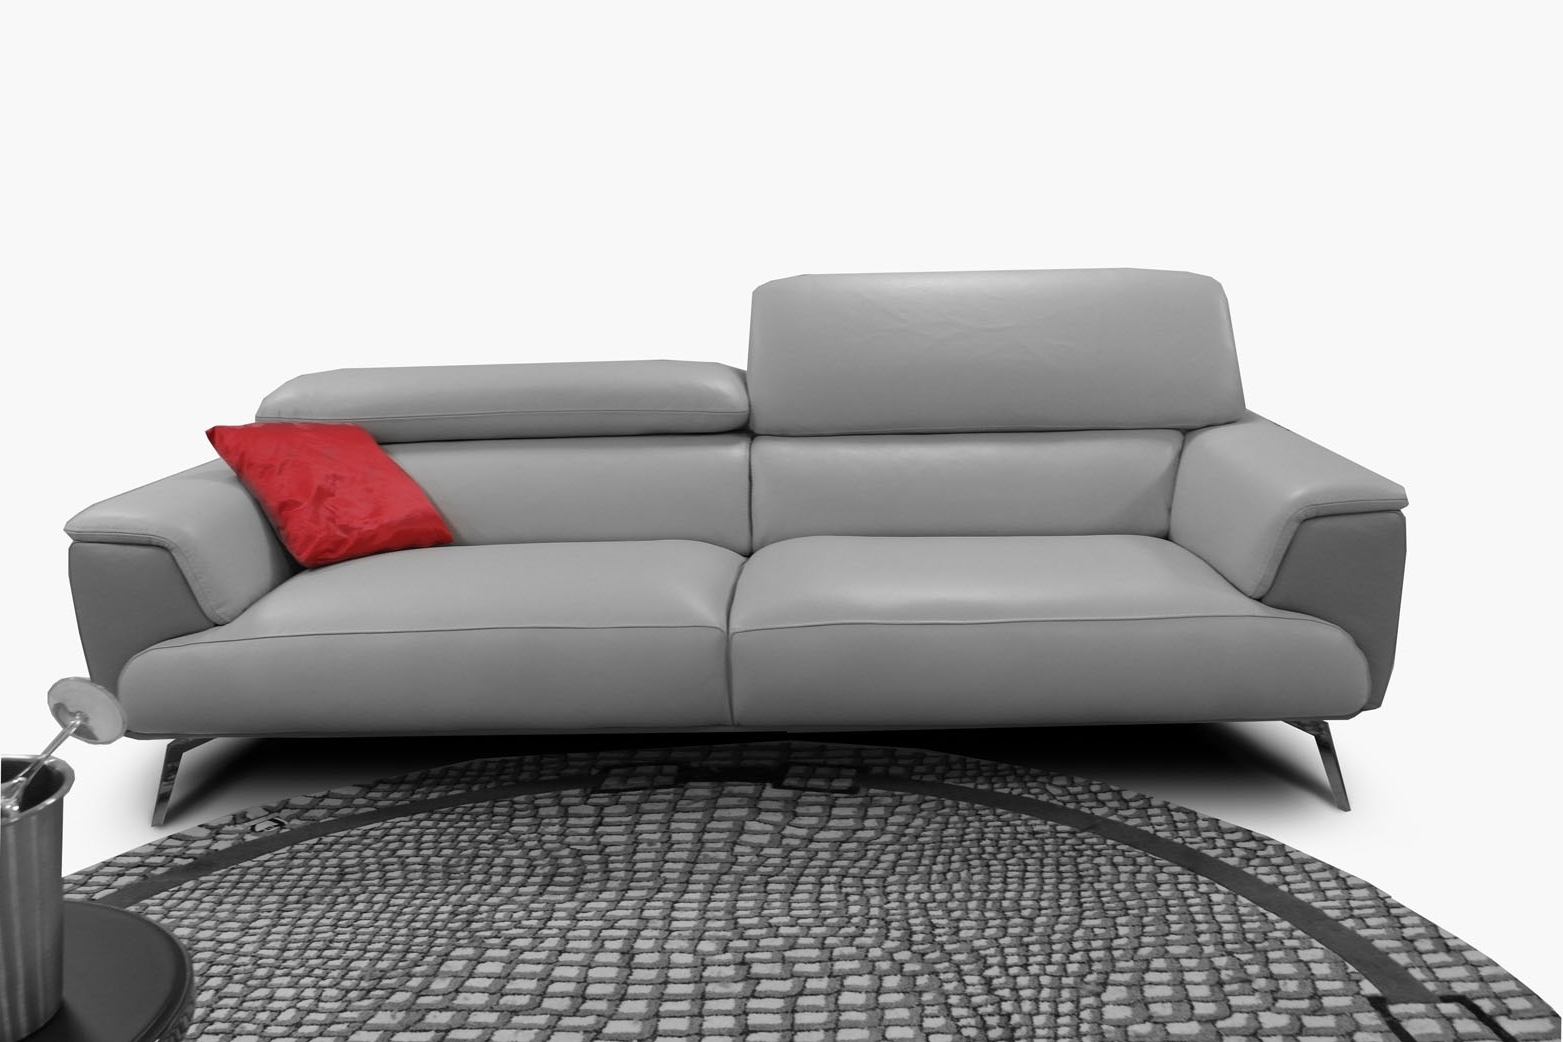 Round & Unusual Sofas • Nieribarcelona Inside Widely Used Unusual Sofa (View 8 of 20)